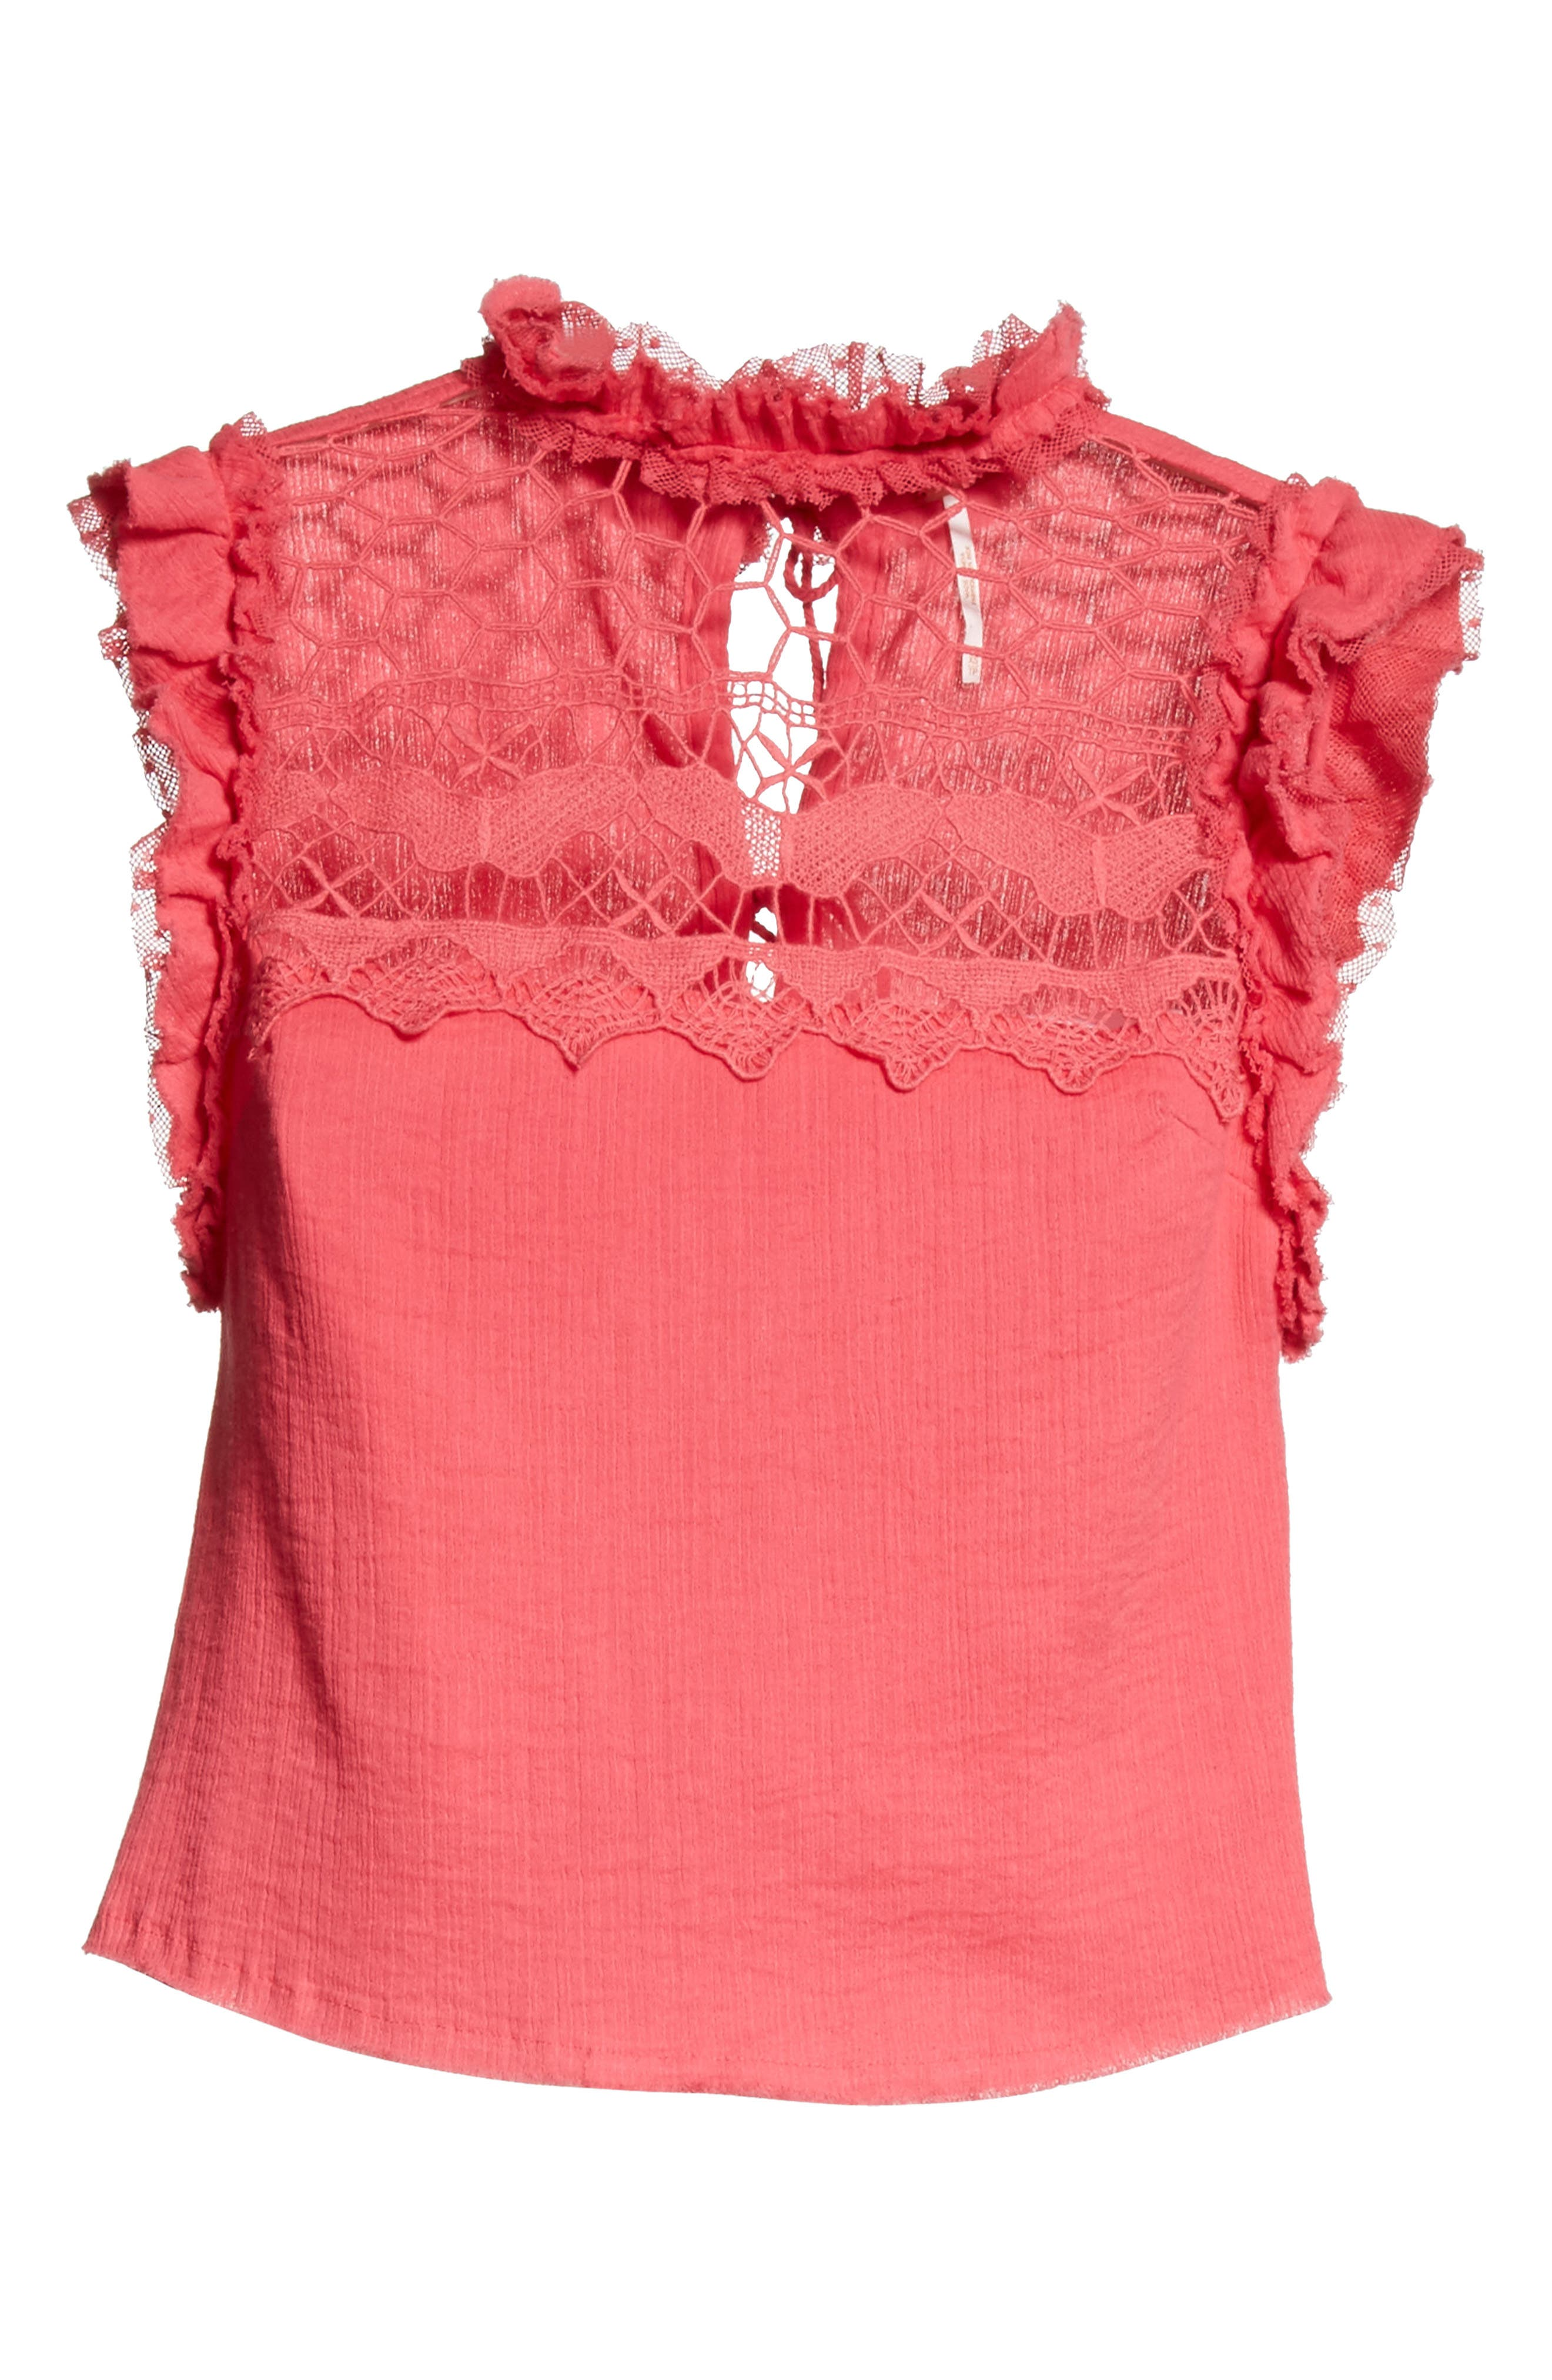 Simply Smiles Crochet Top,                             Alternate thumbnail 6, color,                             Red